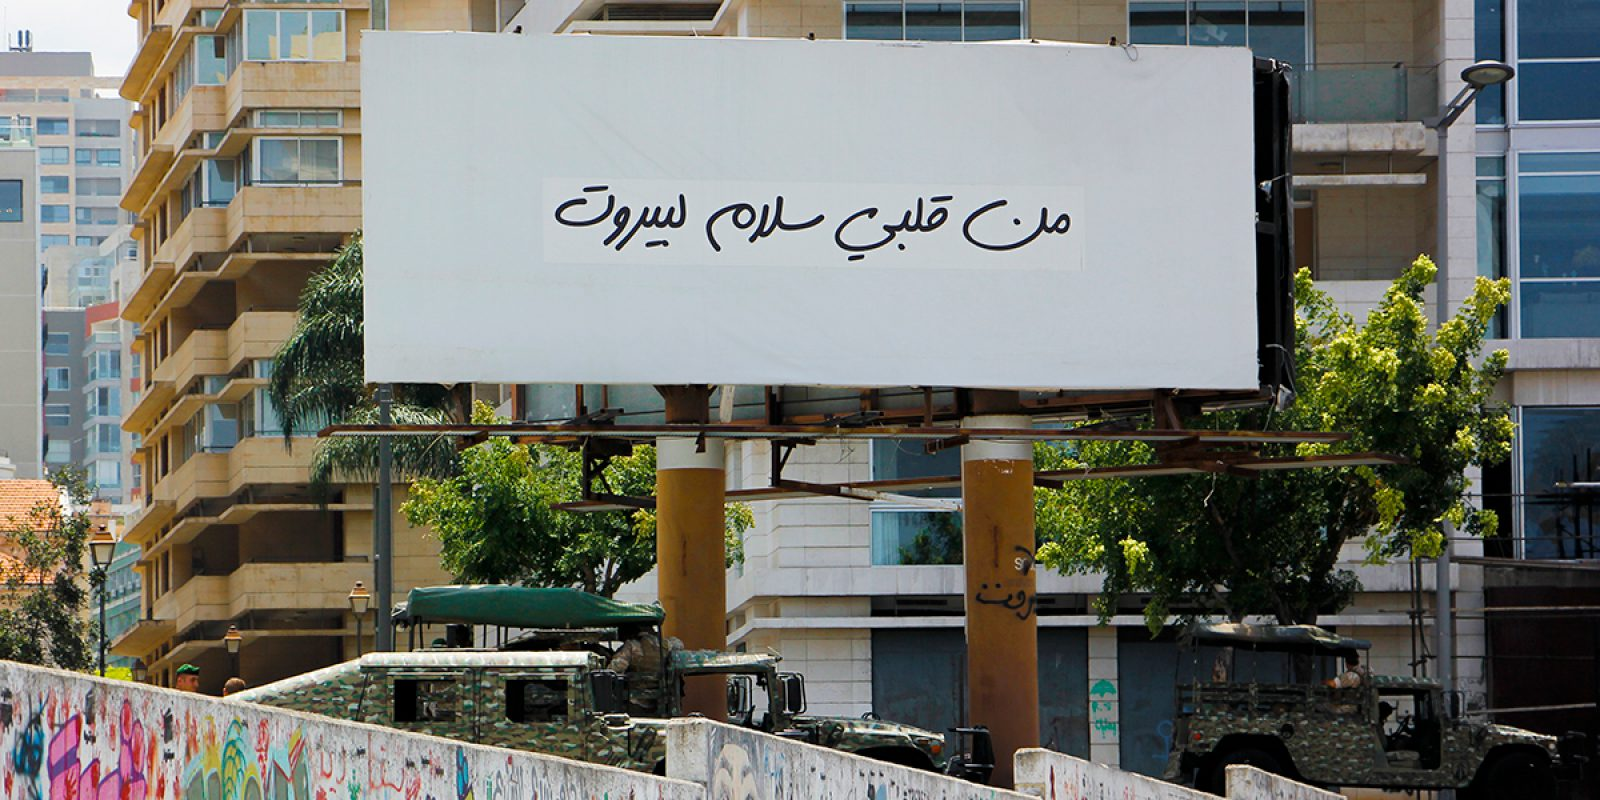 A sign shows a quote from a song by Fairuz, a Lebanese singer, that says